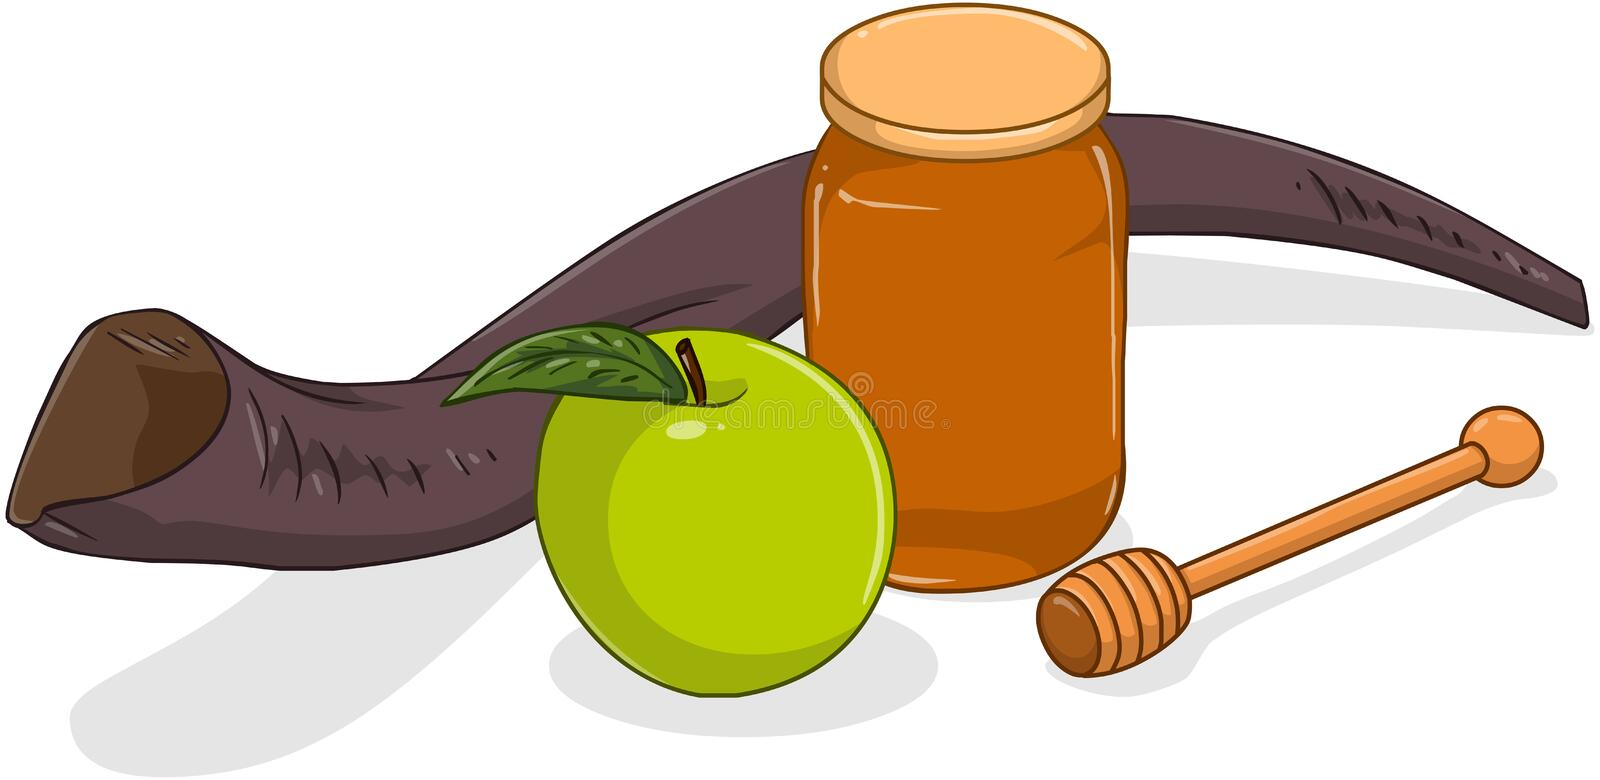 Honey Jar Apple And Shofar For Yom Kippur vector illustration